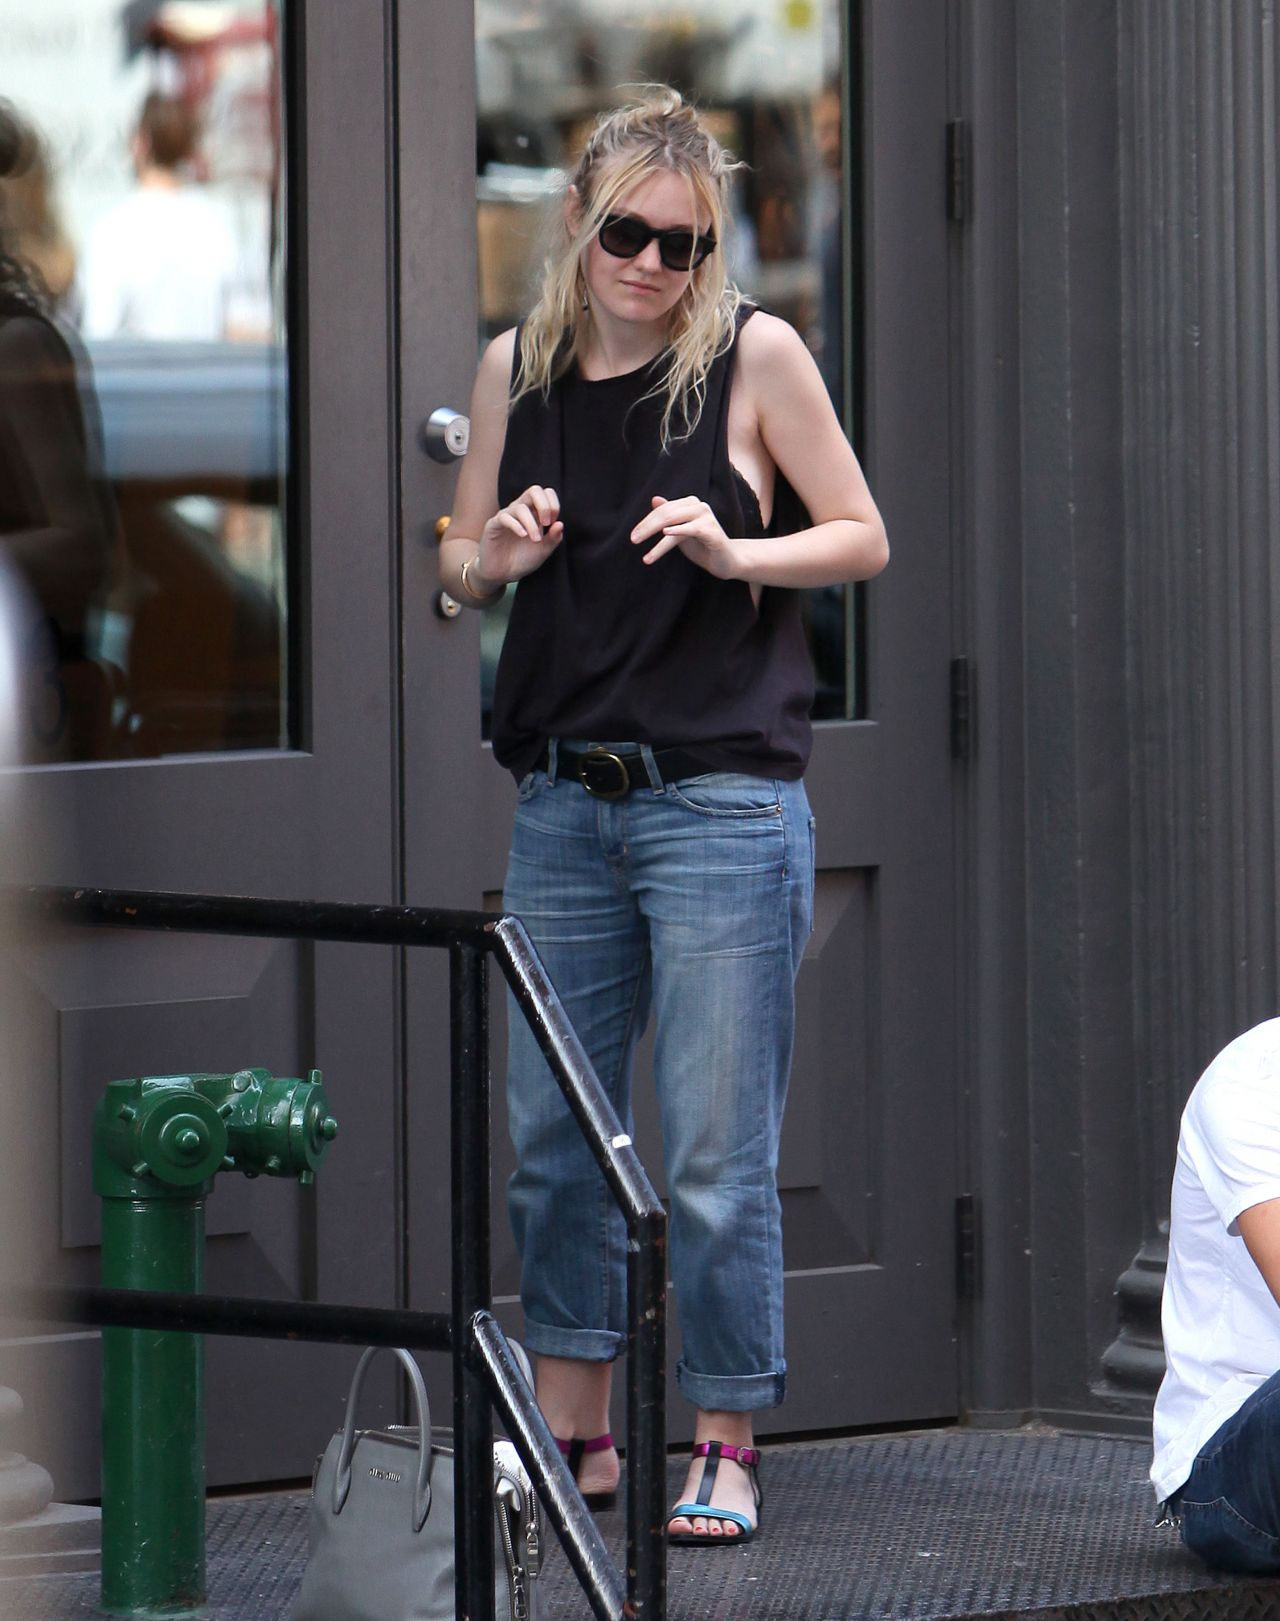 Dakota Fanning Street Style - Out in NYC - August 2014